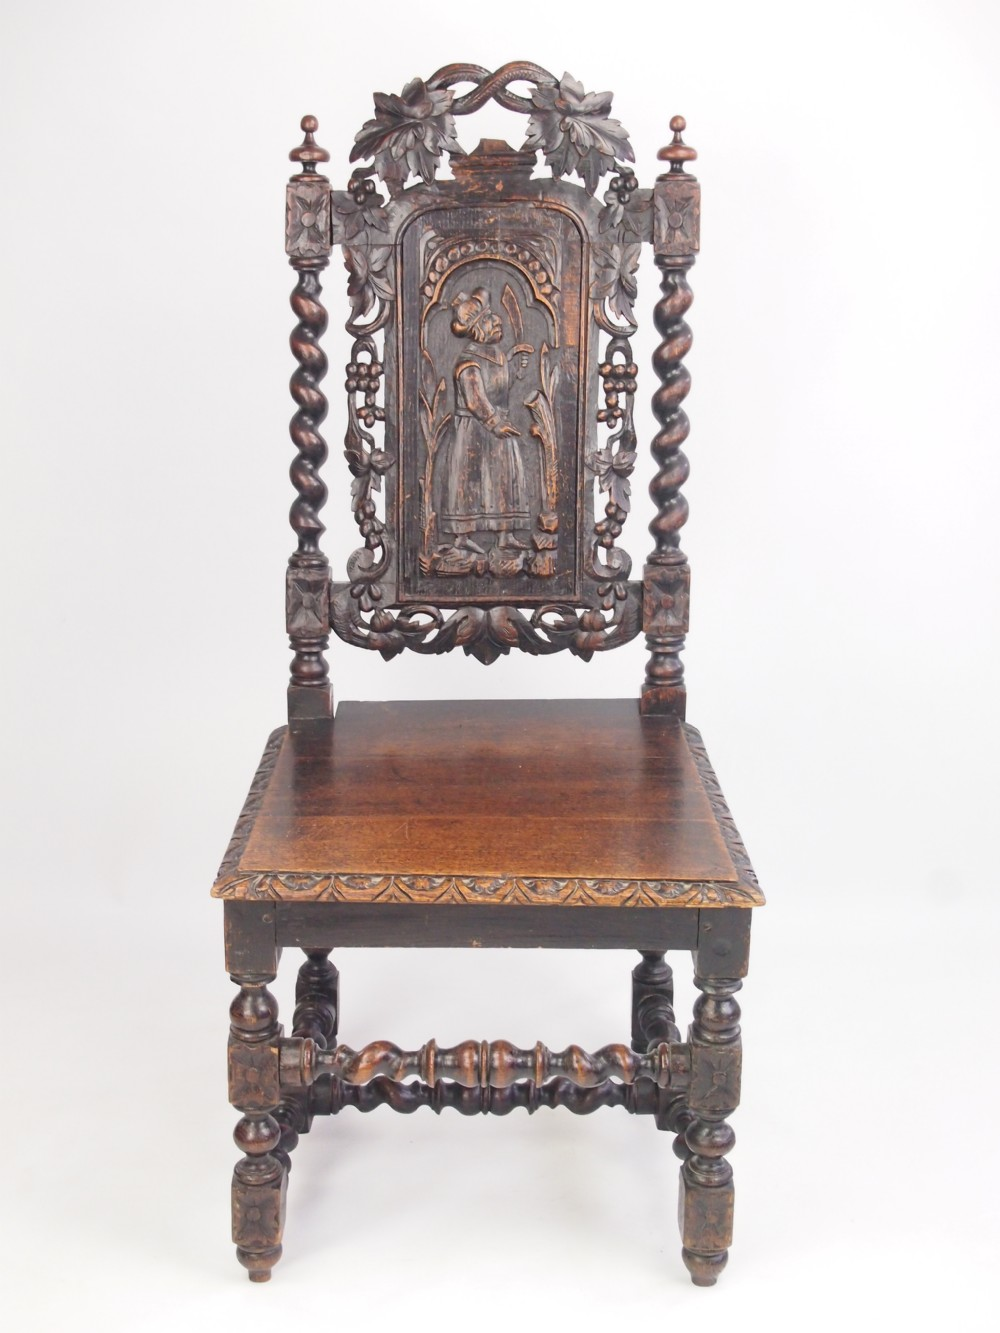 antique victorian carved oak gothic chair hall or desk chair - Antique Victorian Carved Oak Gothic Chair / Hall Or Desk Chair